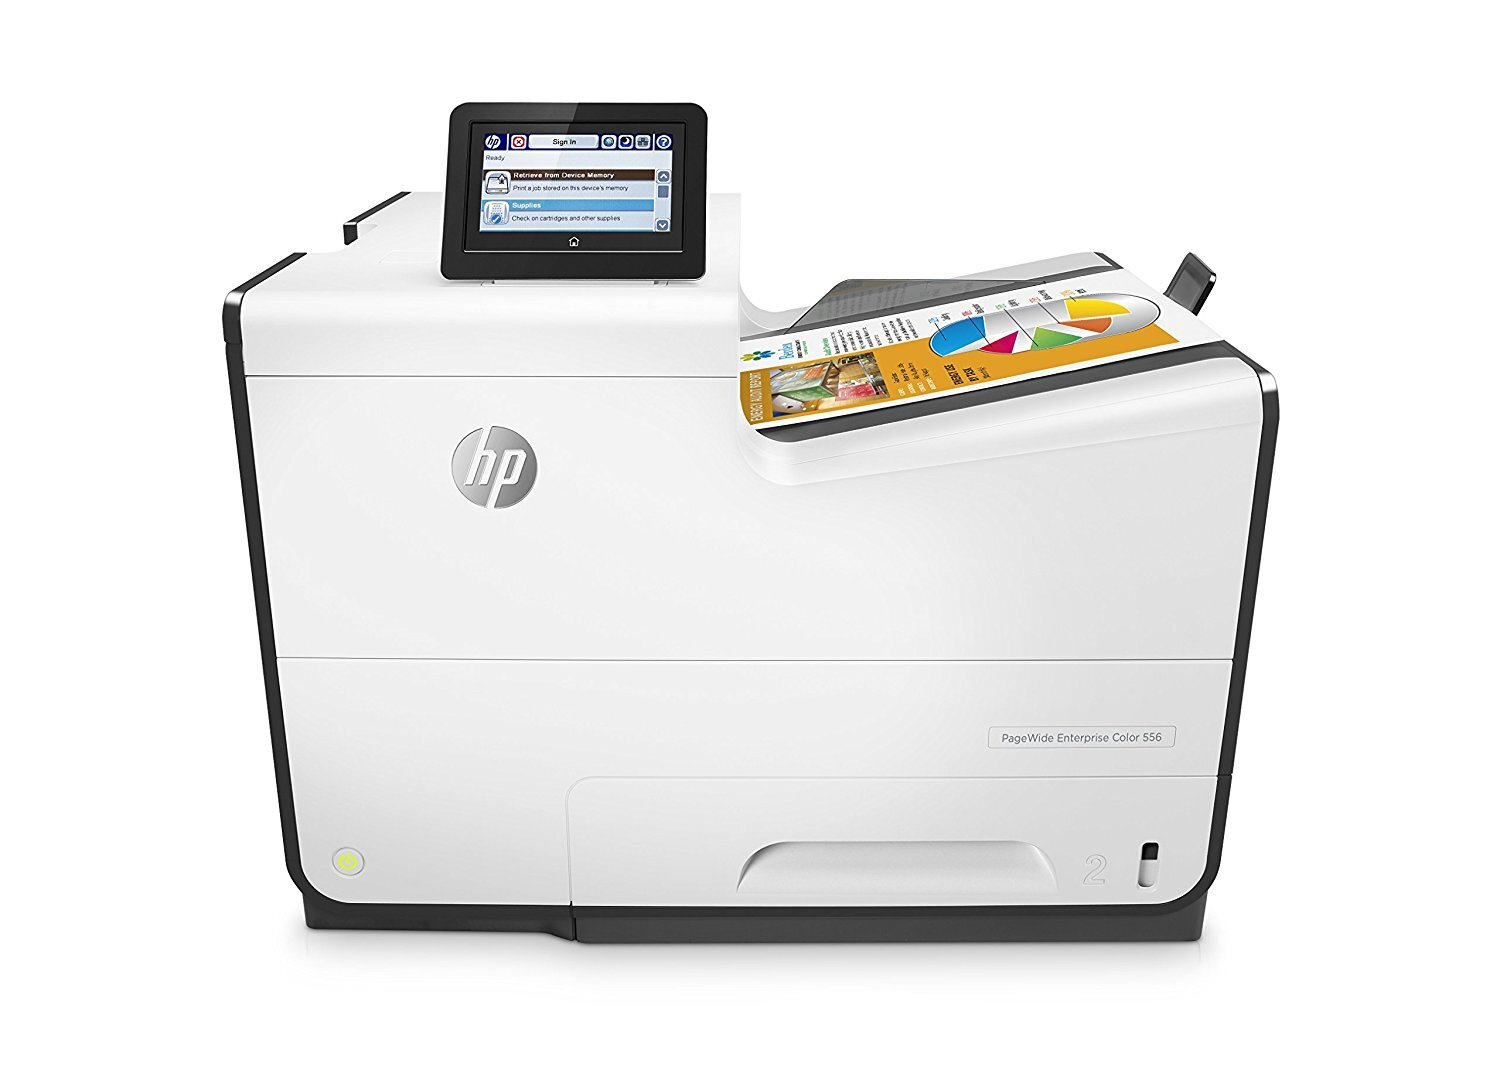 Принтер A4 HP PageWide Enterprise 556dn (G1W46A)